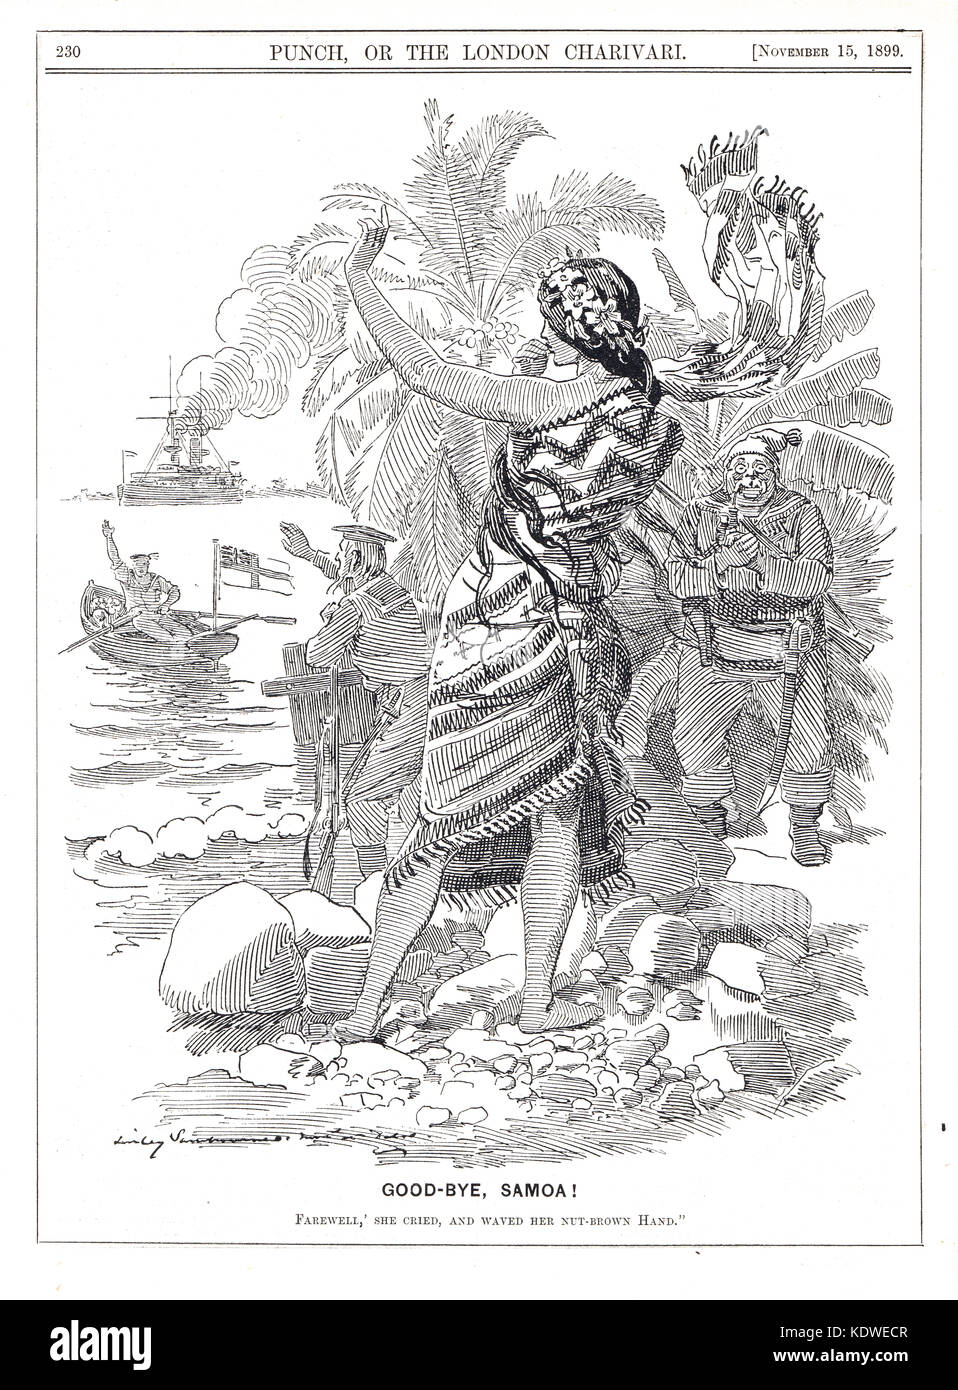 American samoan stock photos american samoan stock images alamy britain leaves samoa second samoan civil war 1899 stock image m4hsunfo